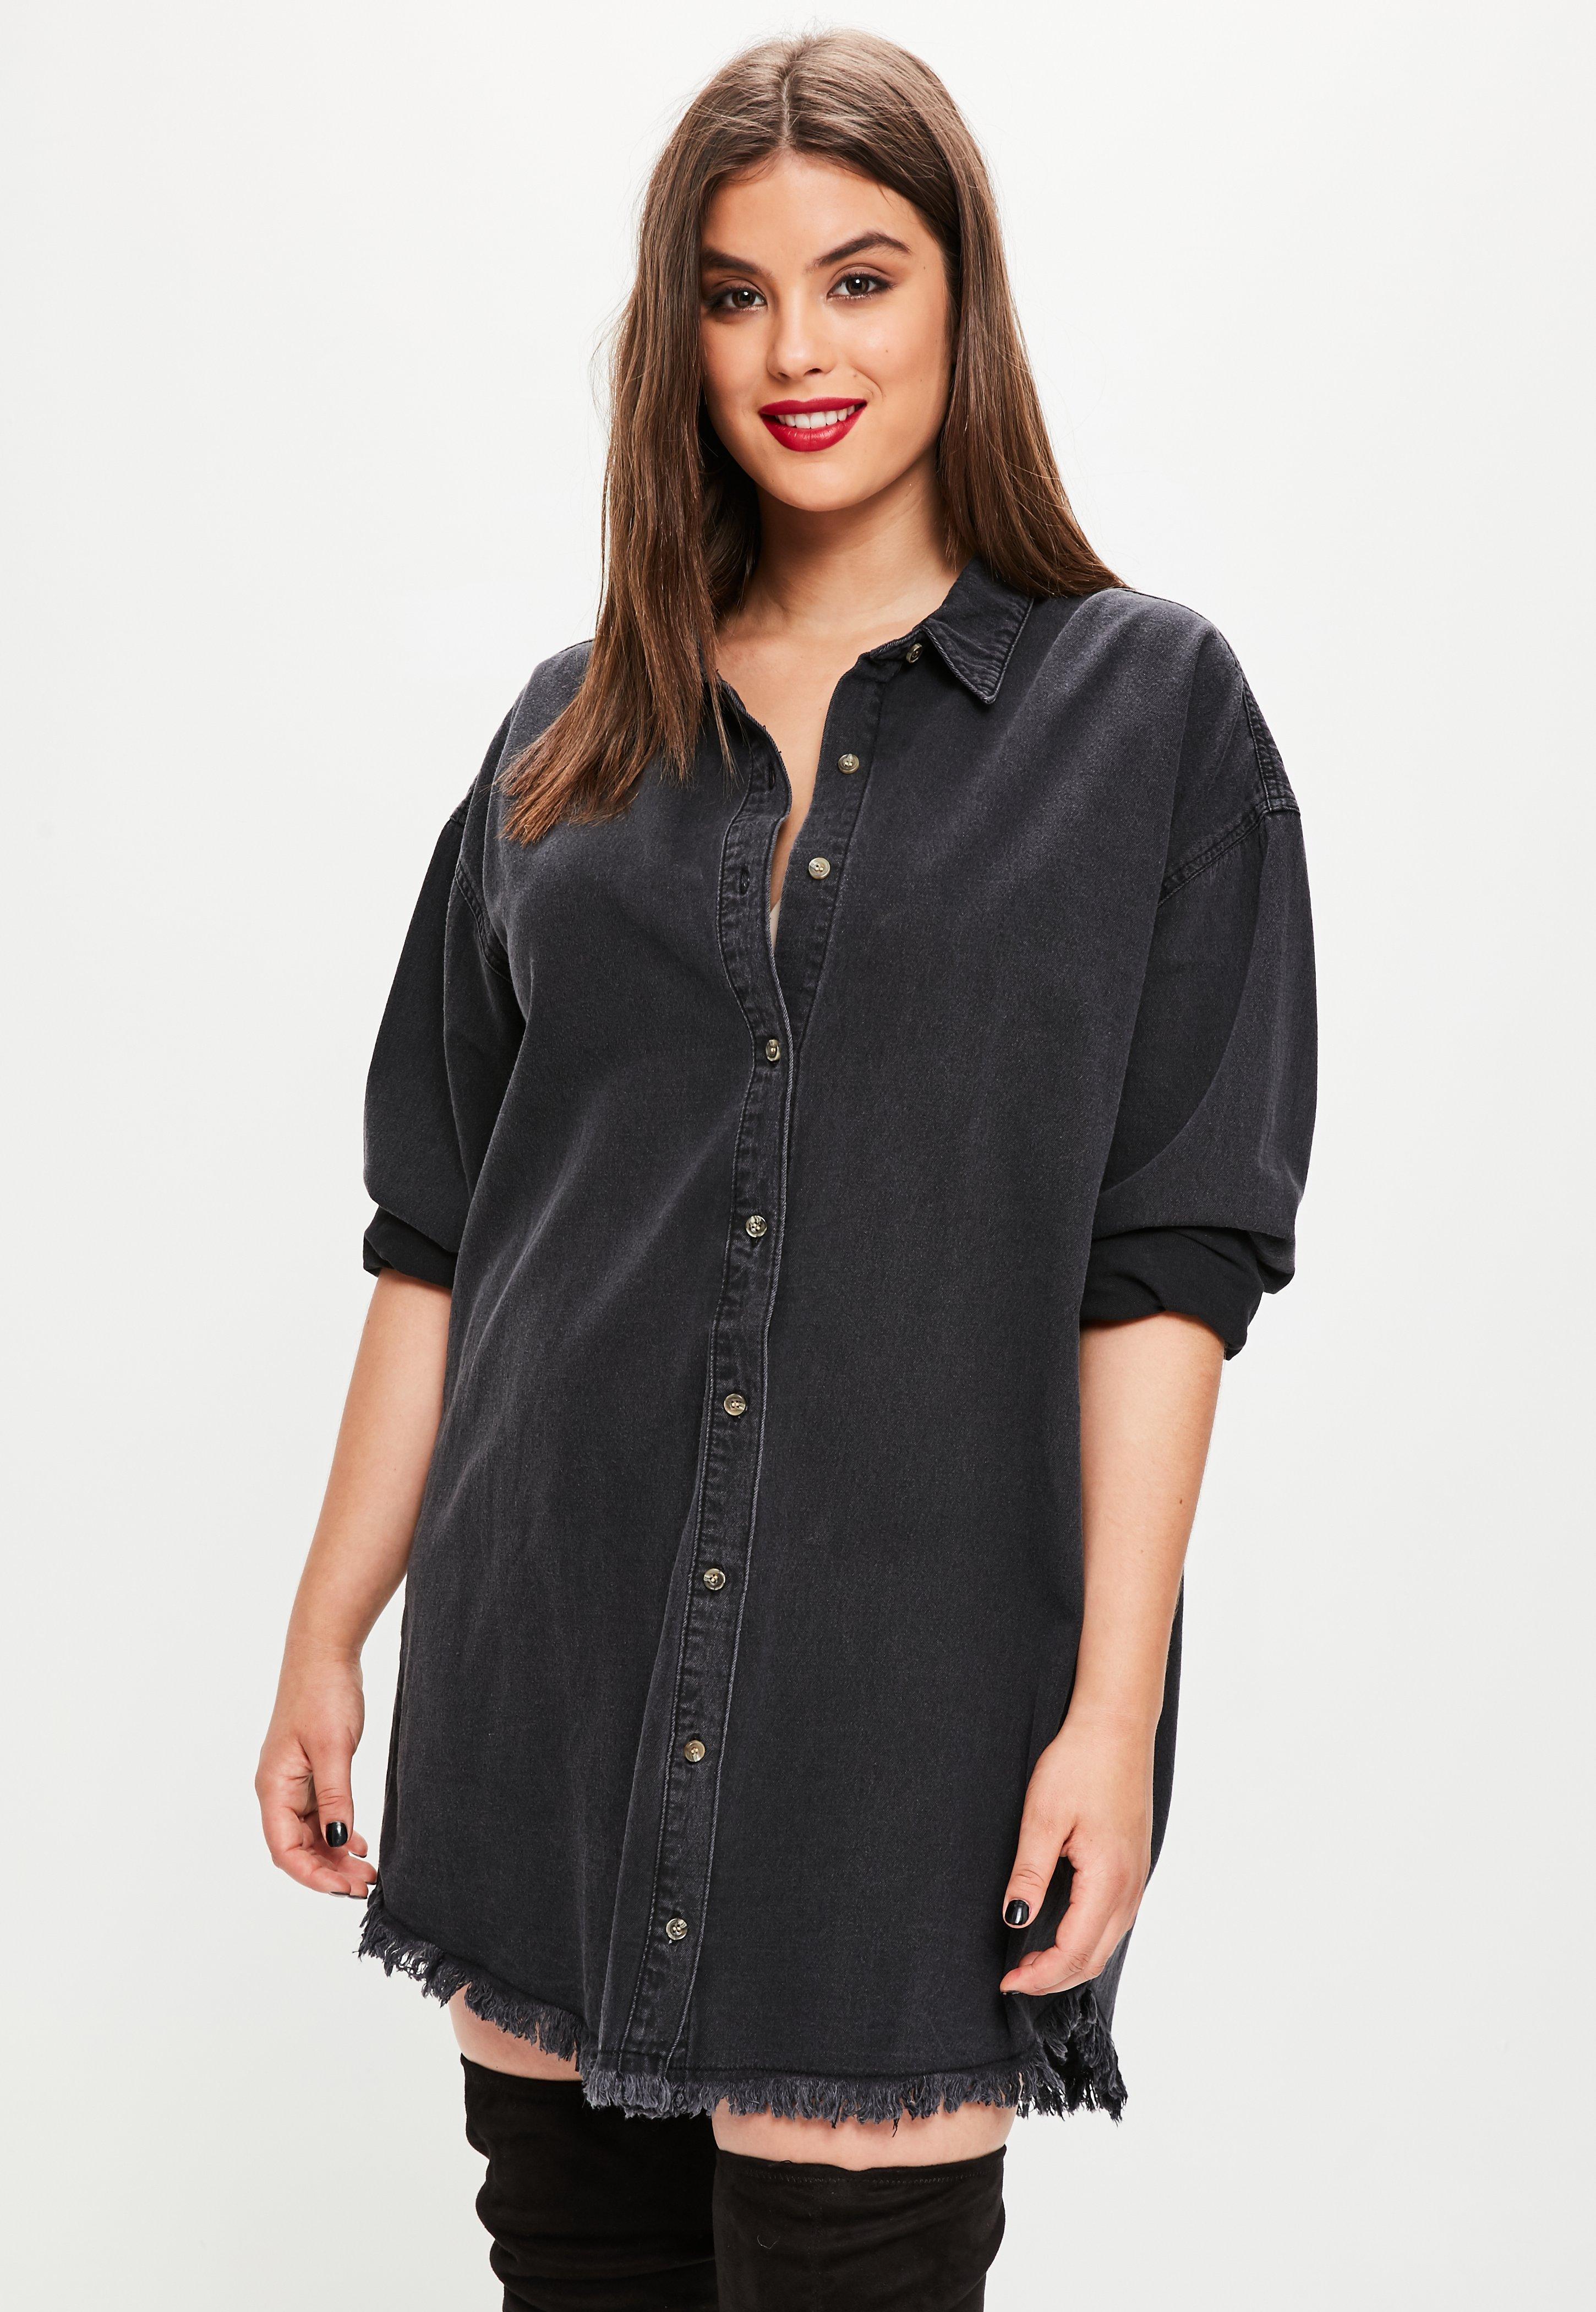 d3cf0f8e198 Lyst - Missguided Plus Size Black Oversized Denim Shirt Dress in Black